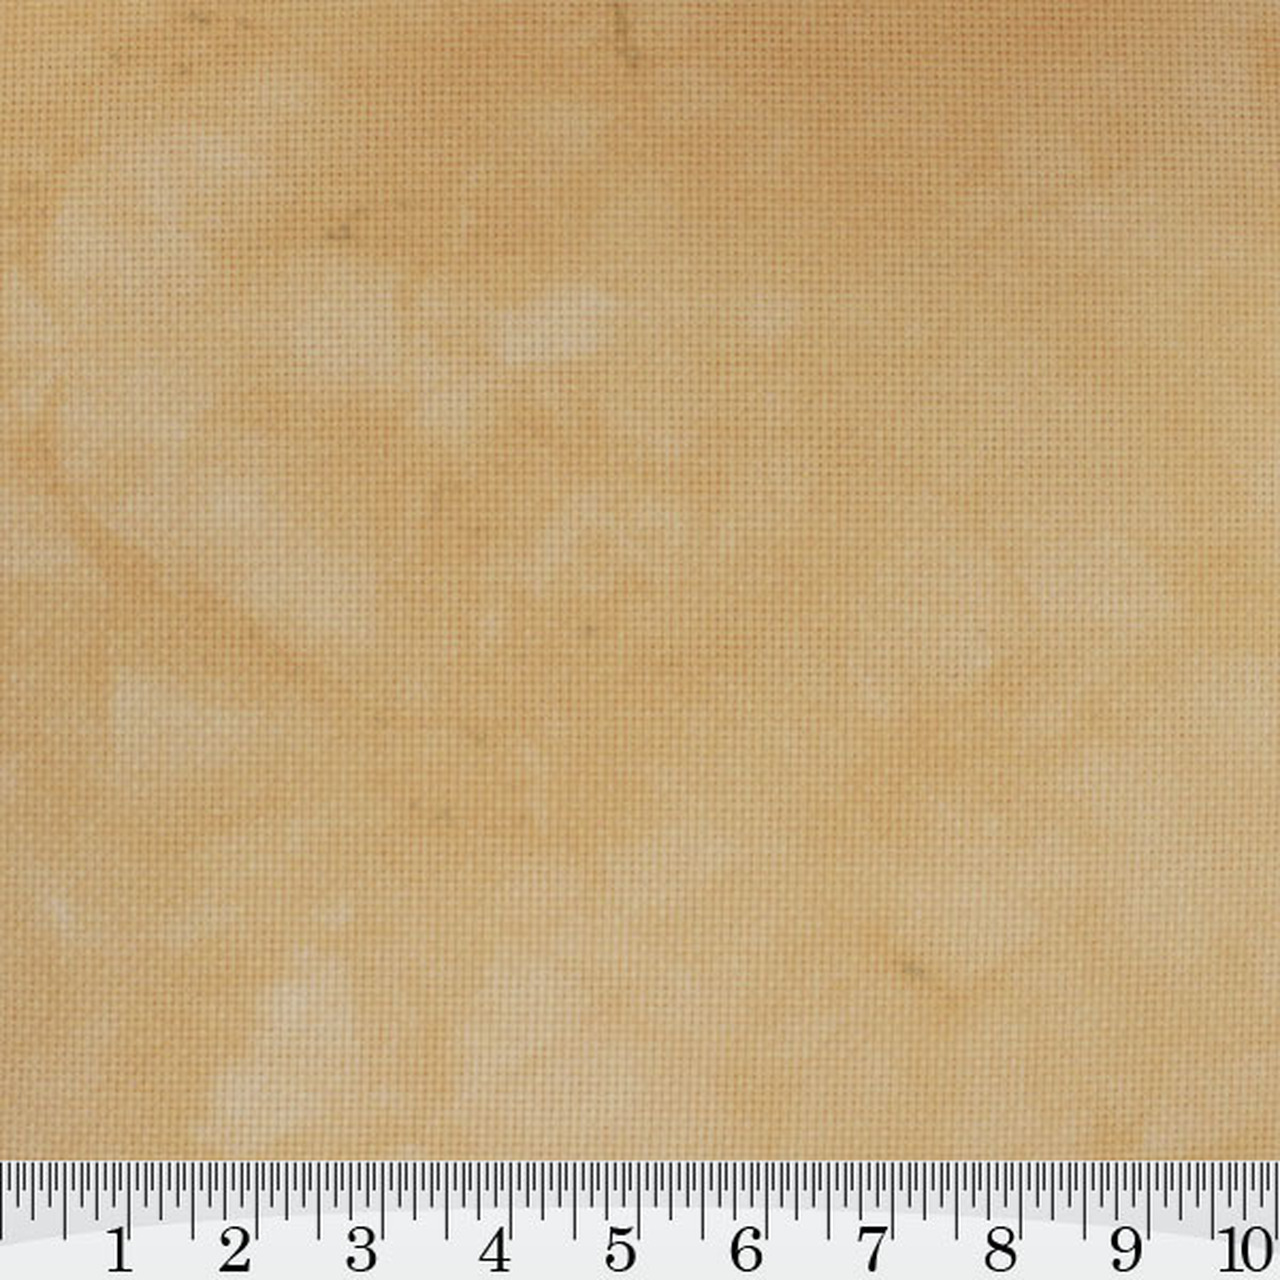 Peach Hand Dyed Effect Cross Stitch Fabric